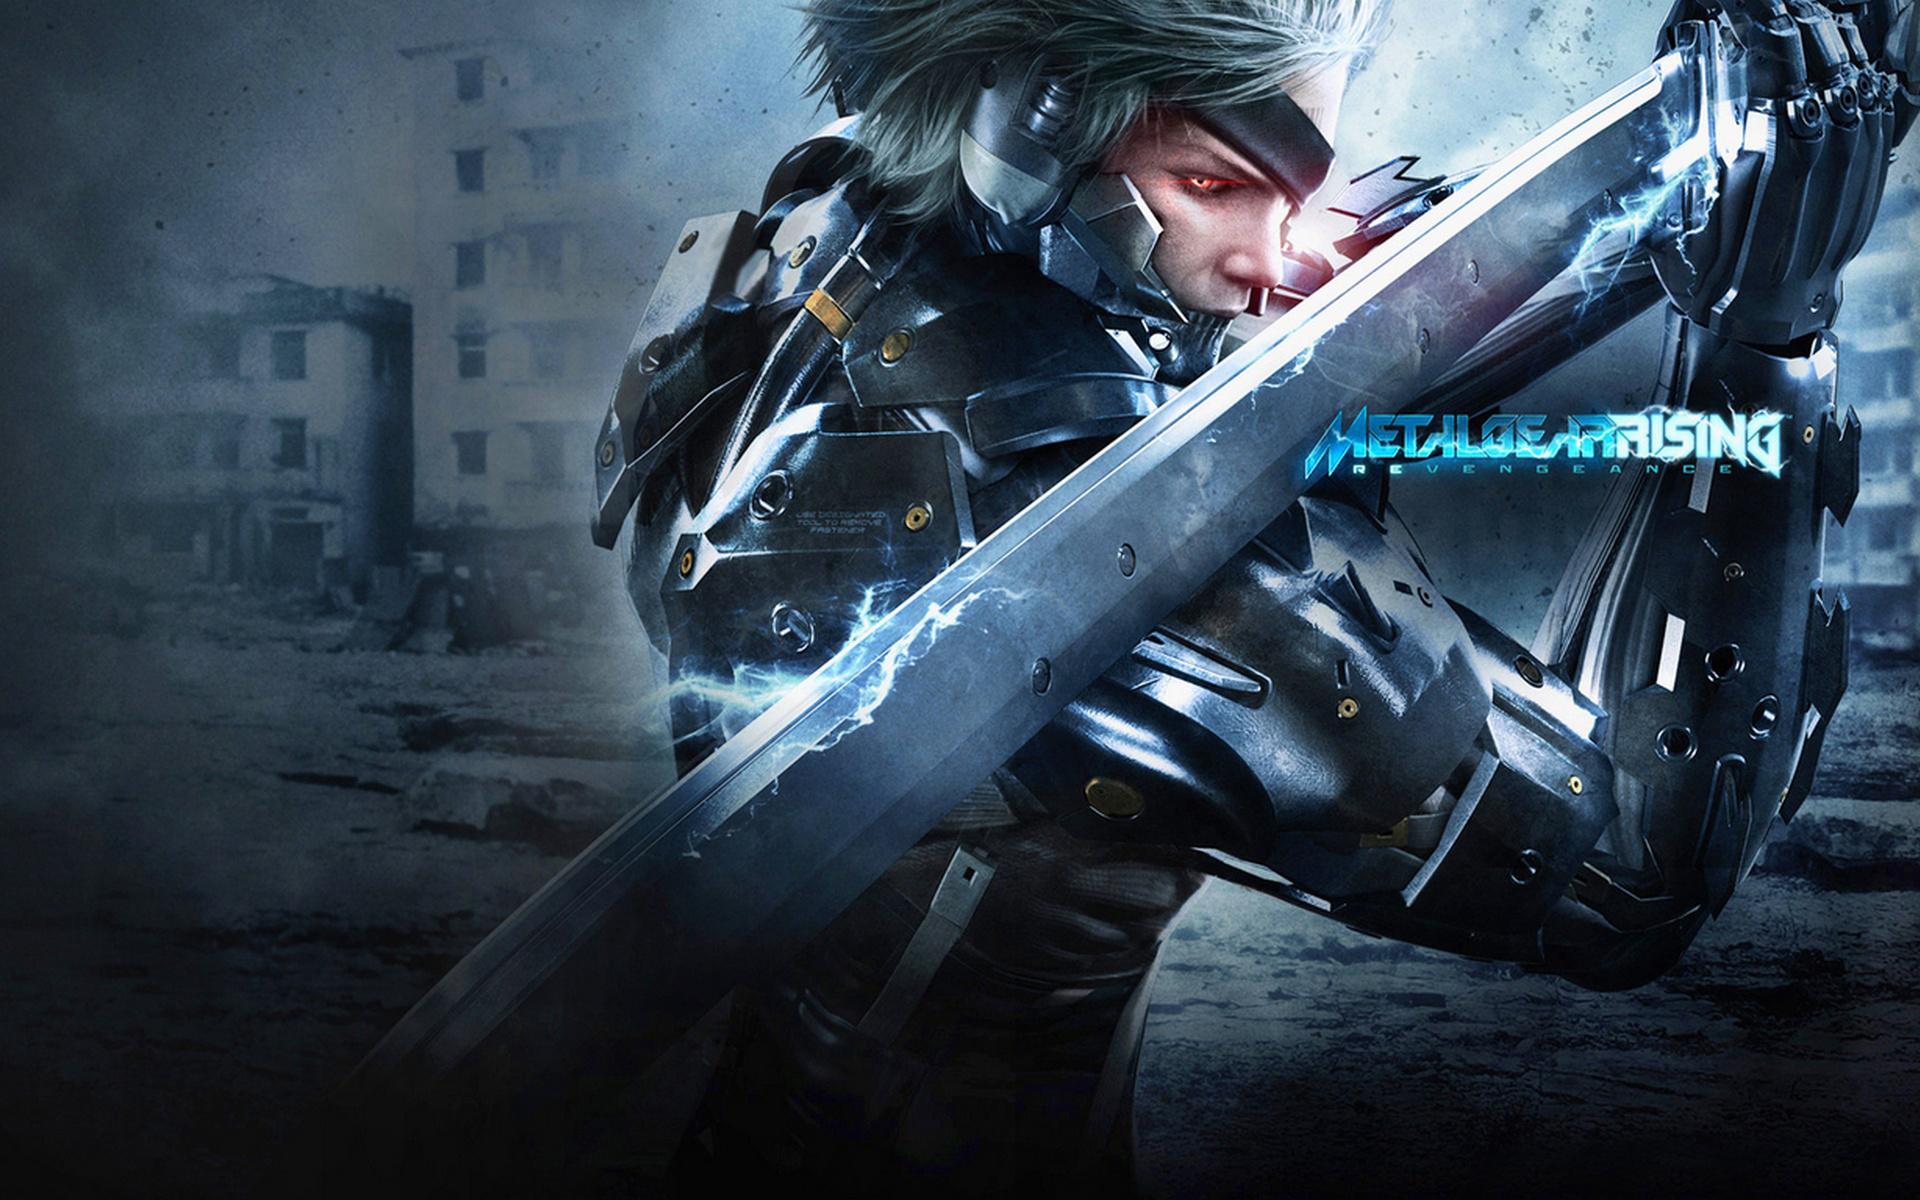 metal_gear_rising_revengeance-wide